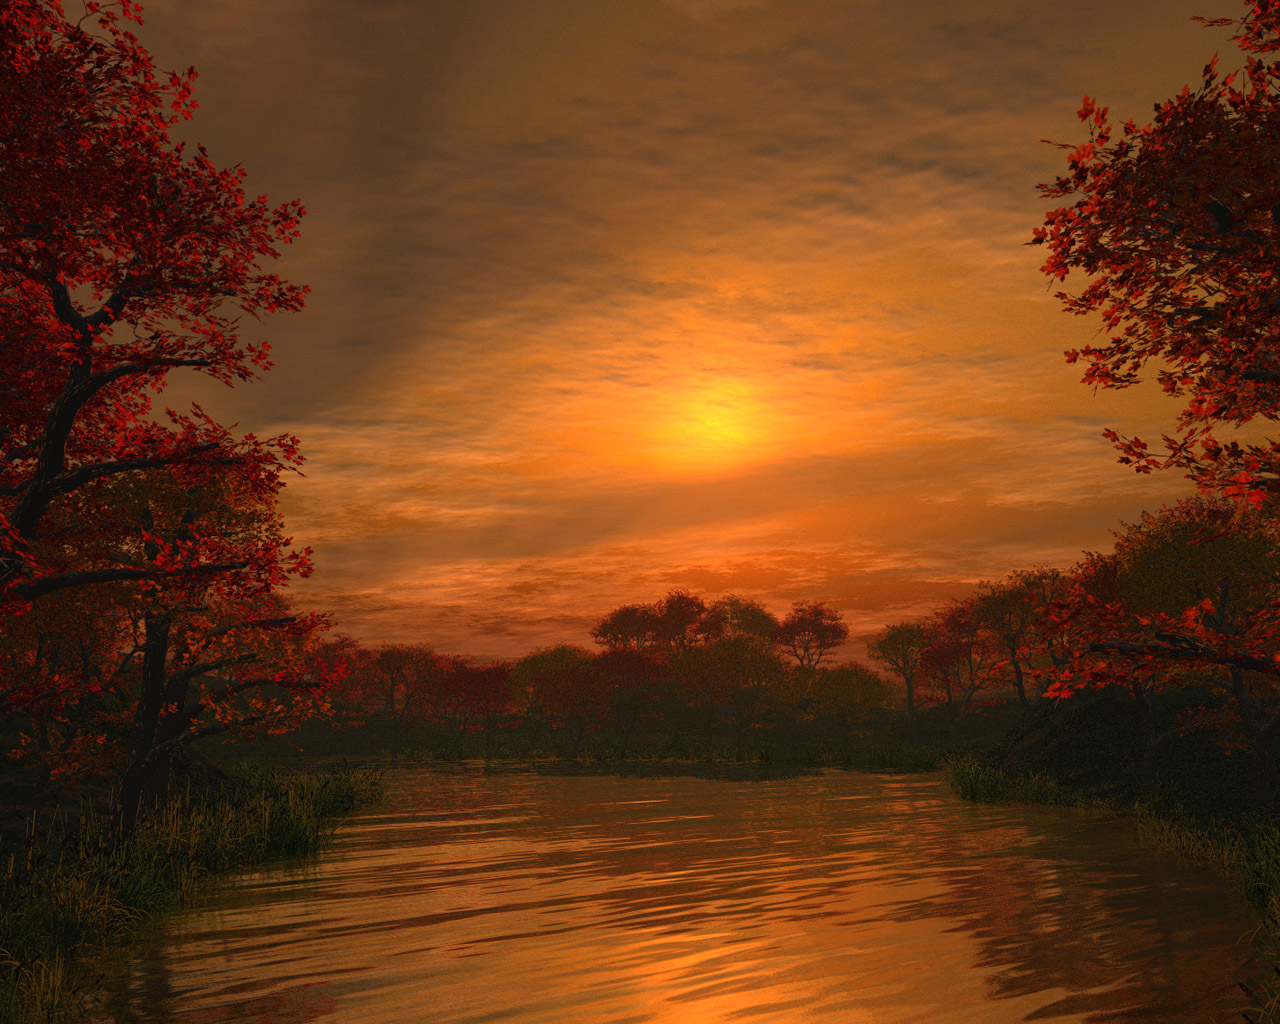 Sunset over the lake - the background for your desktop